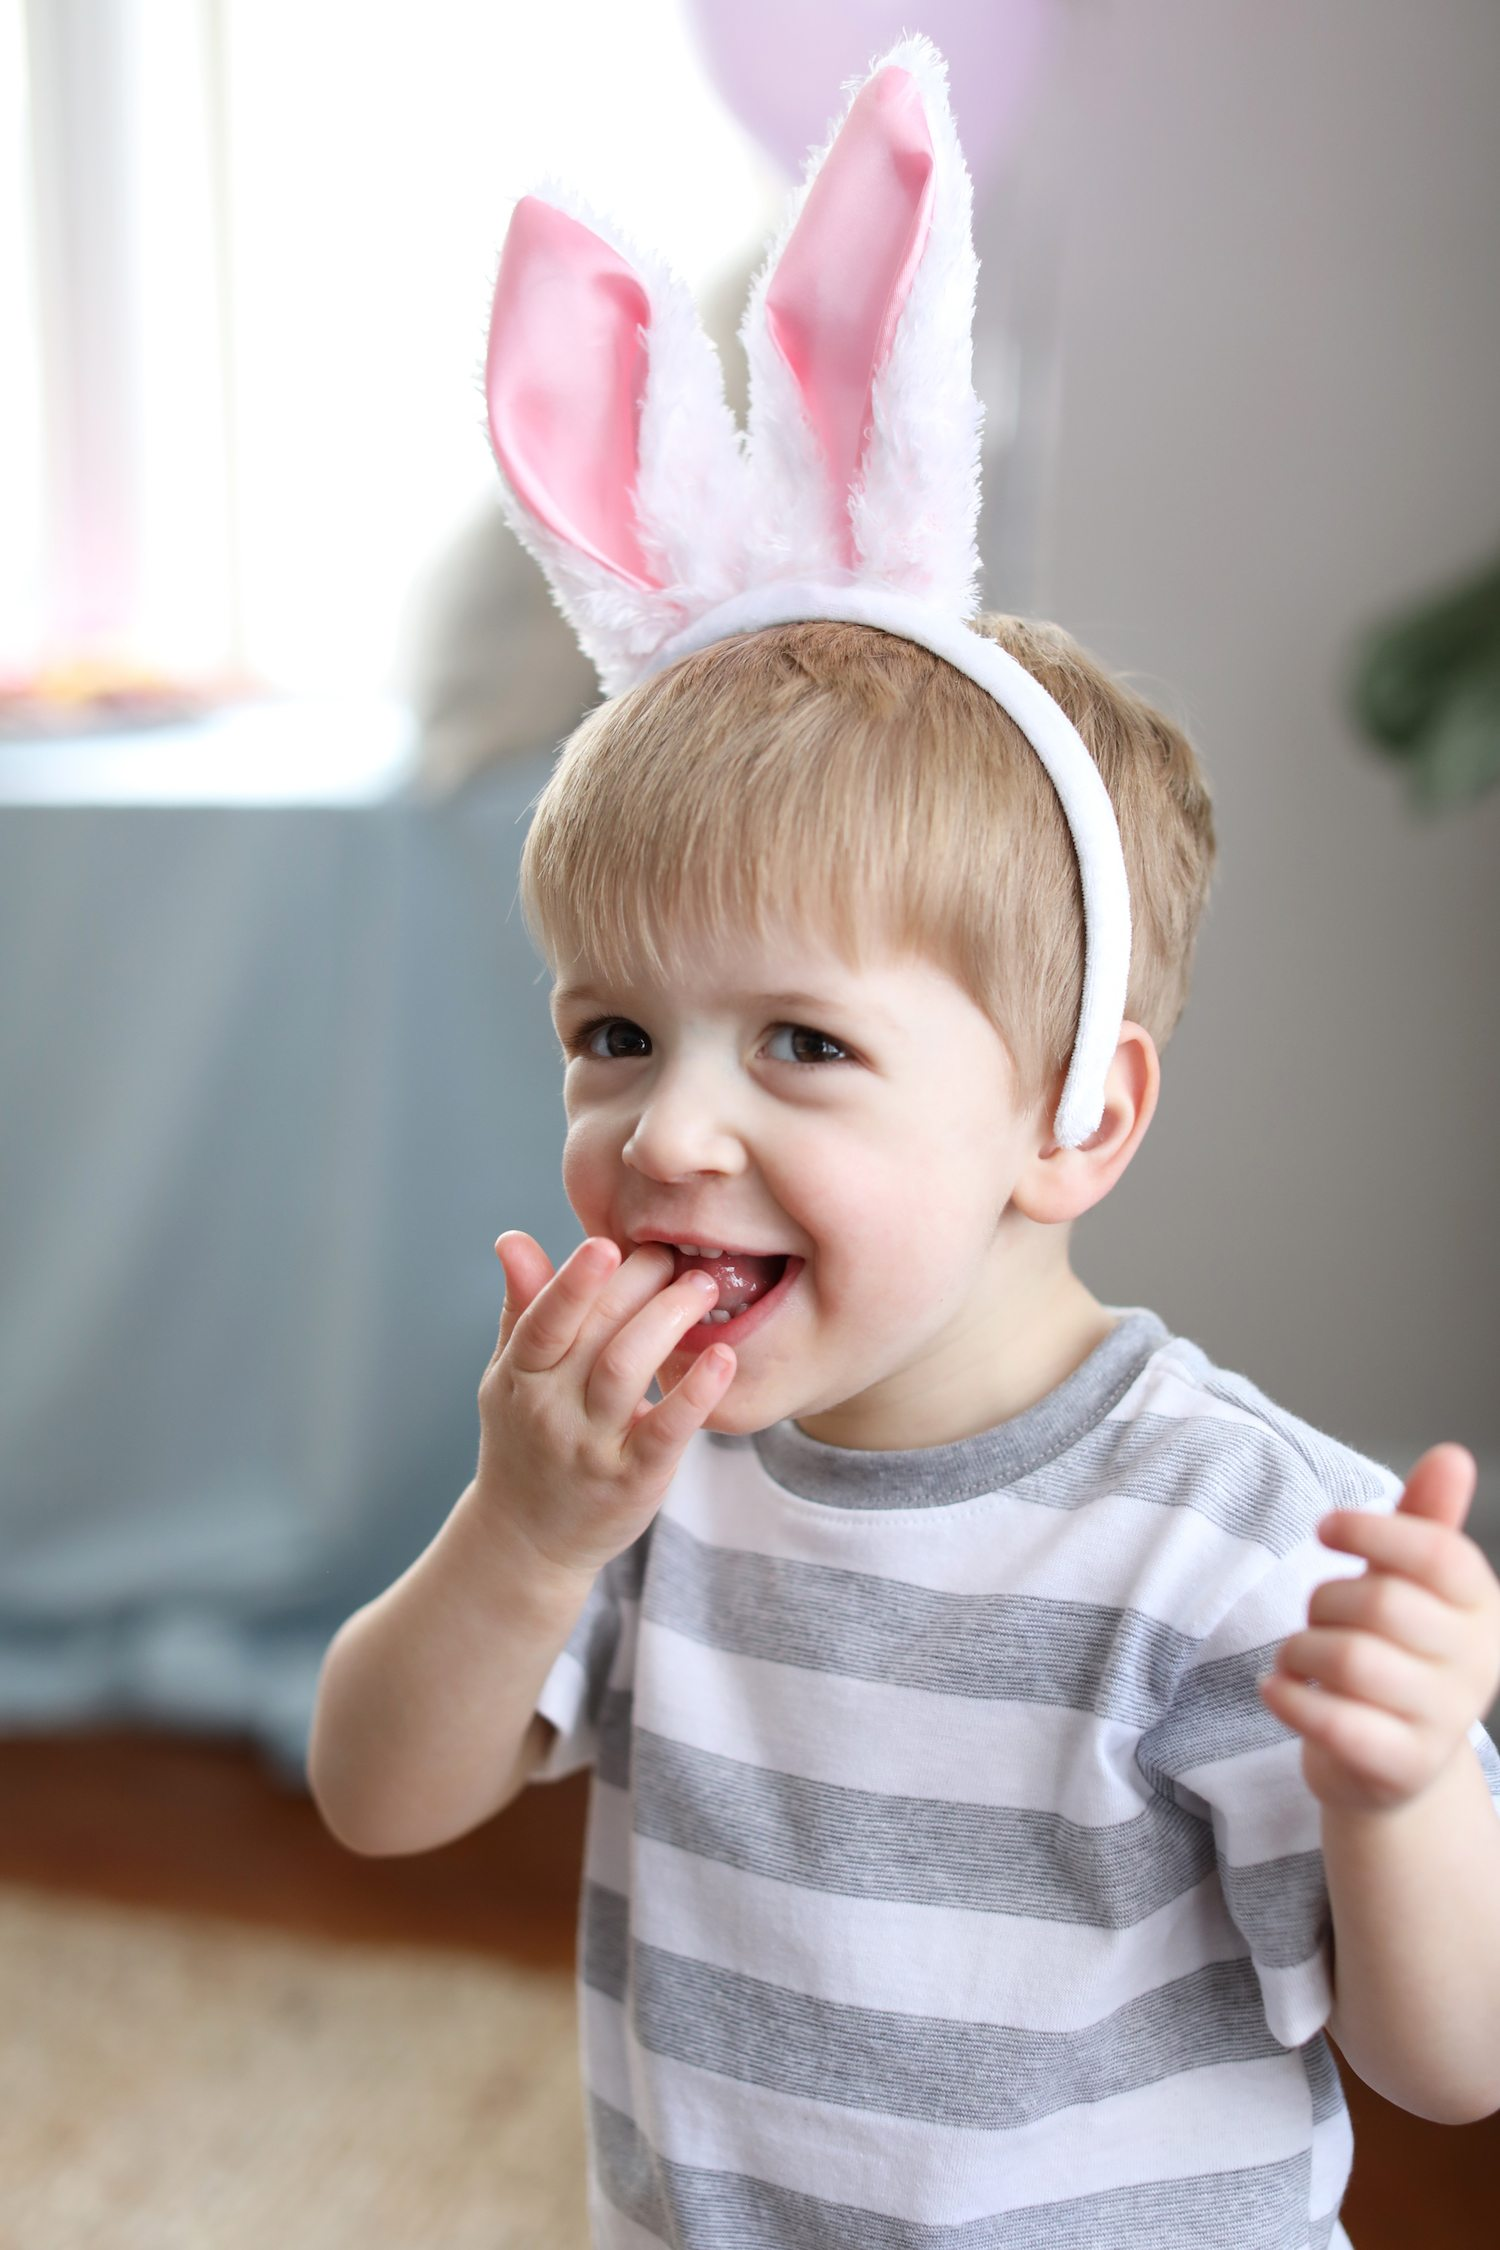 Tips for throwing a colorful kid-friendly Easter egg decorating party! Visit @cydconverse for party ideas, entertaining tips, party recipes and more!